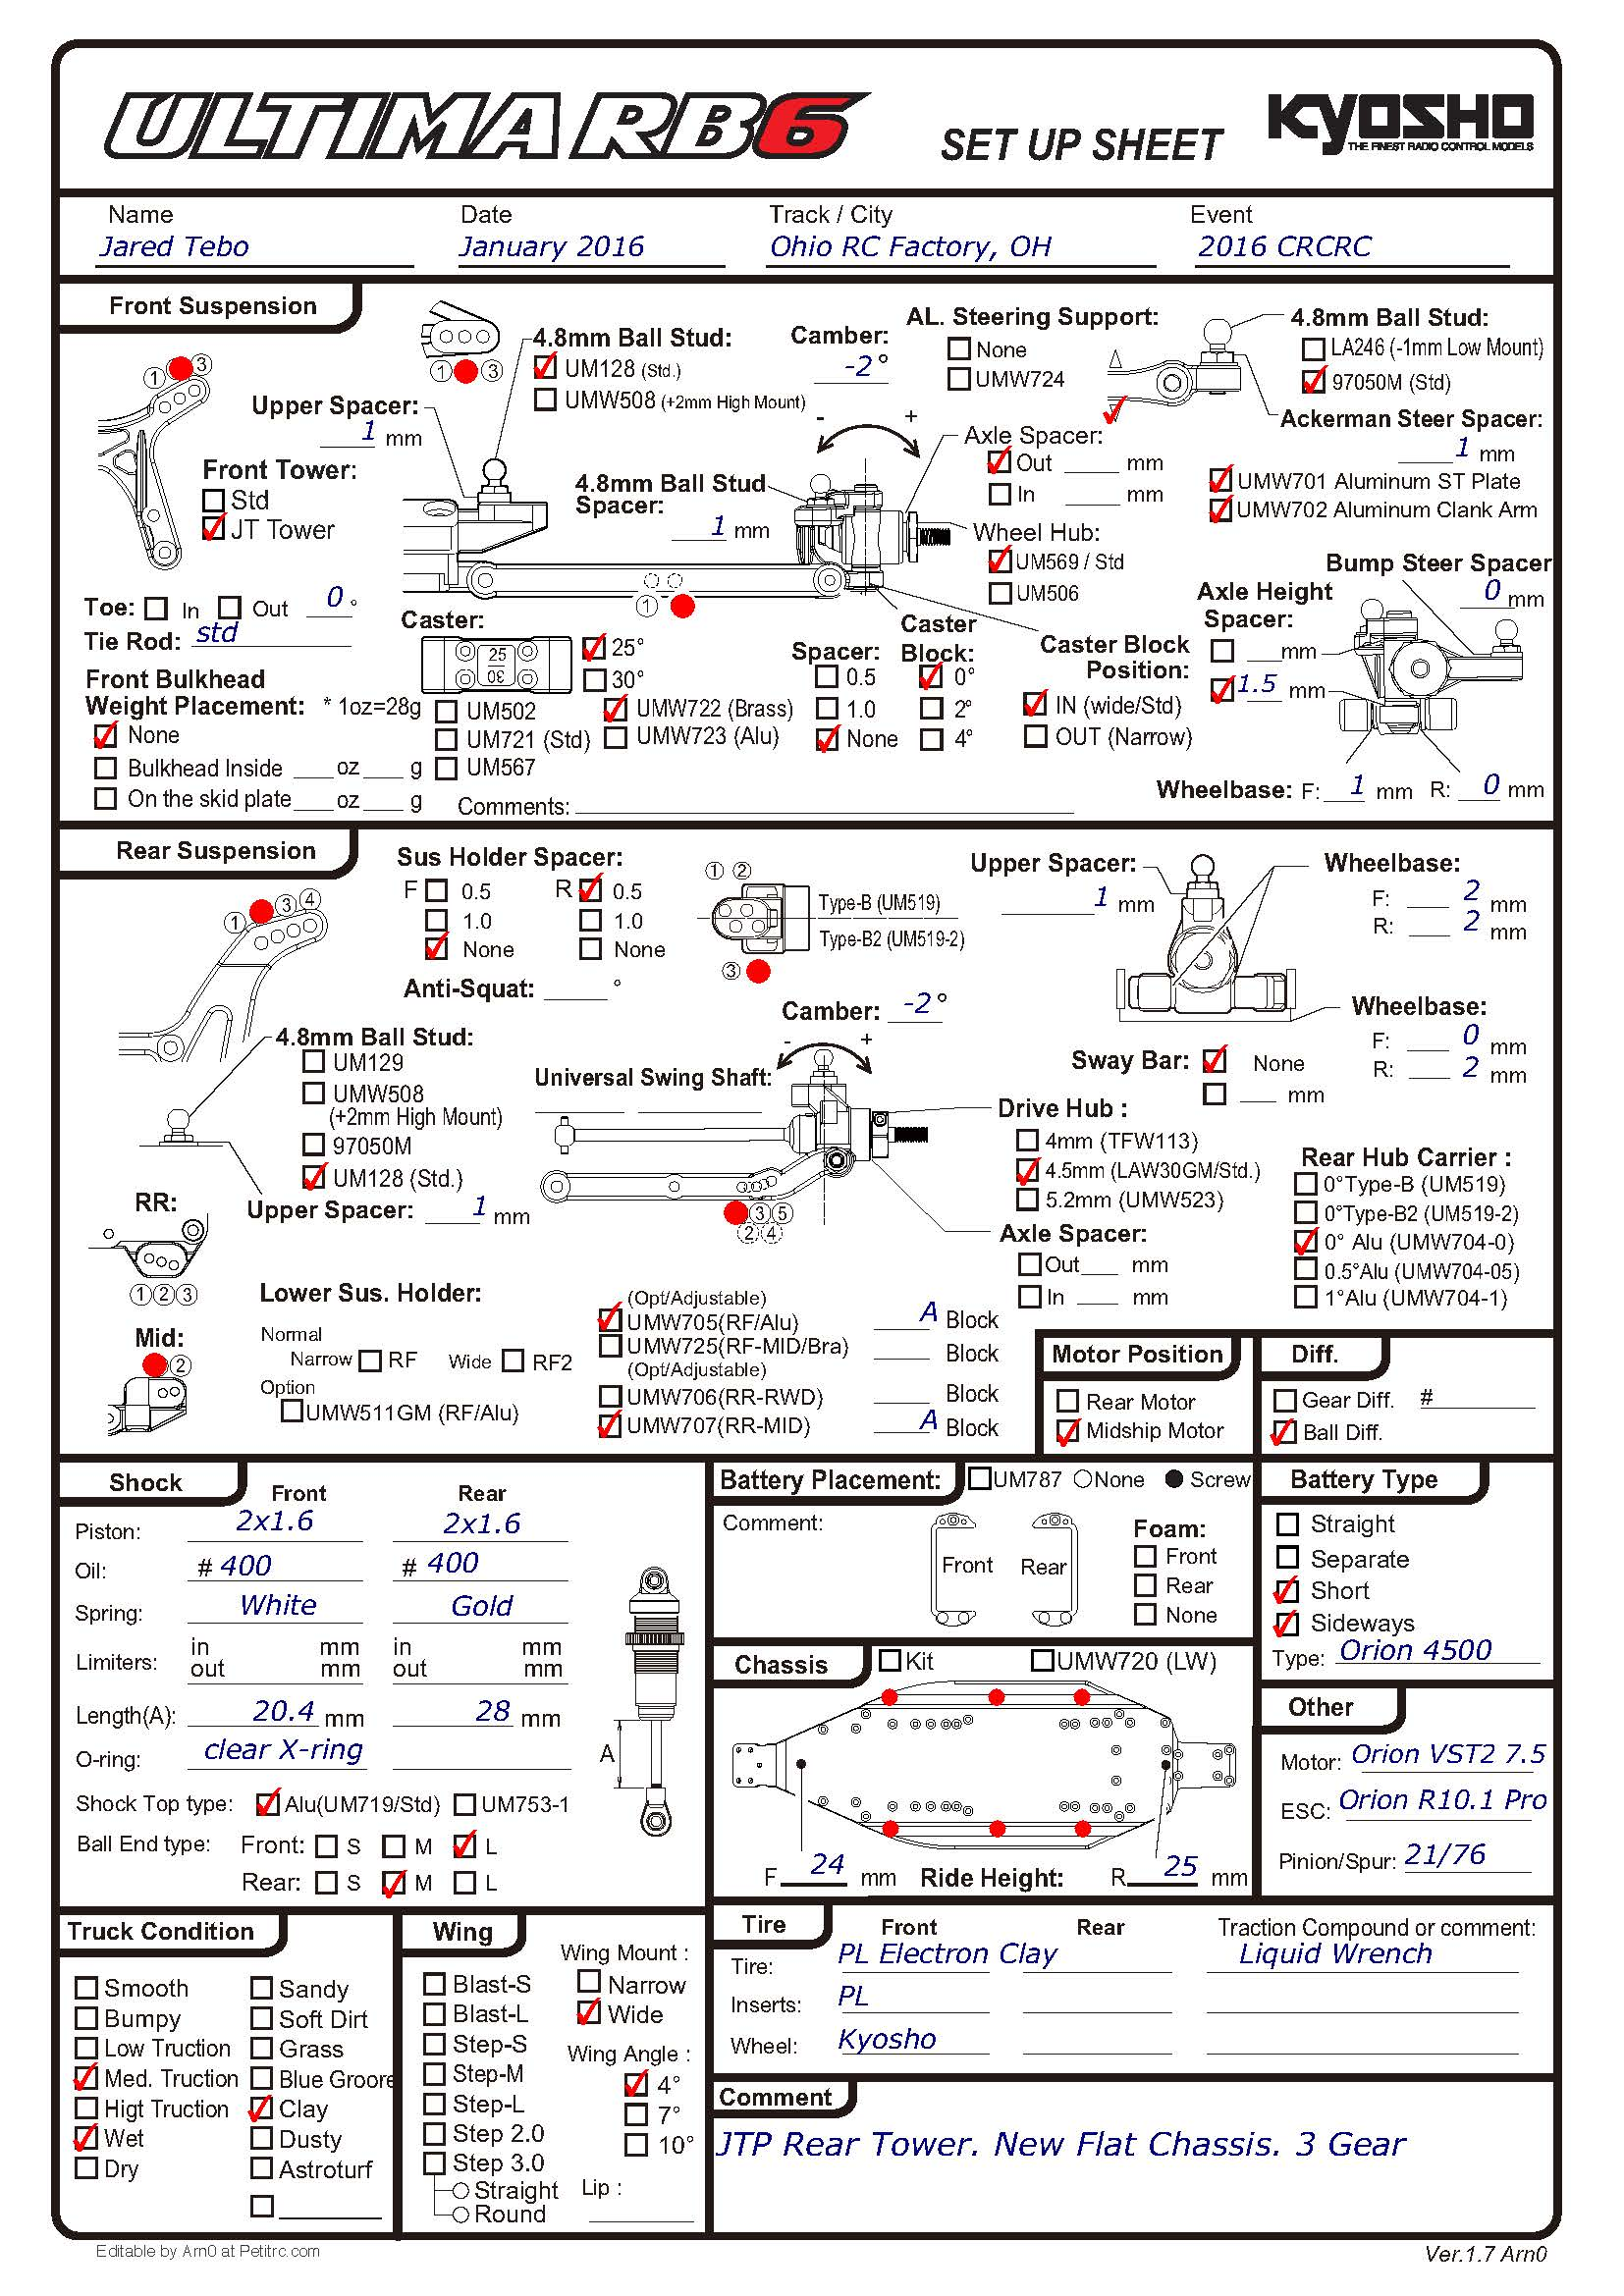 67 Vw Parts Diagram on 1966 porsche 912 wiring diagram